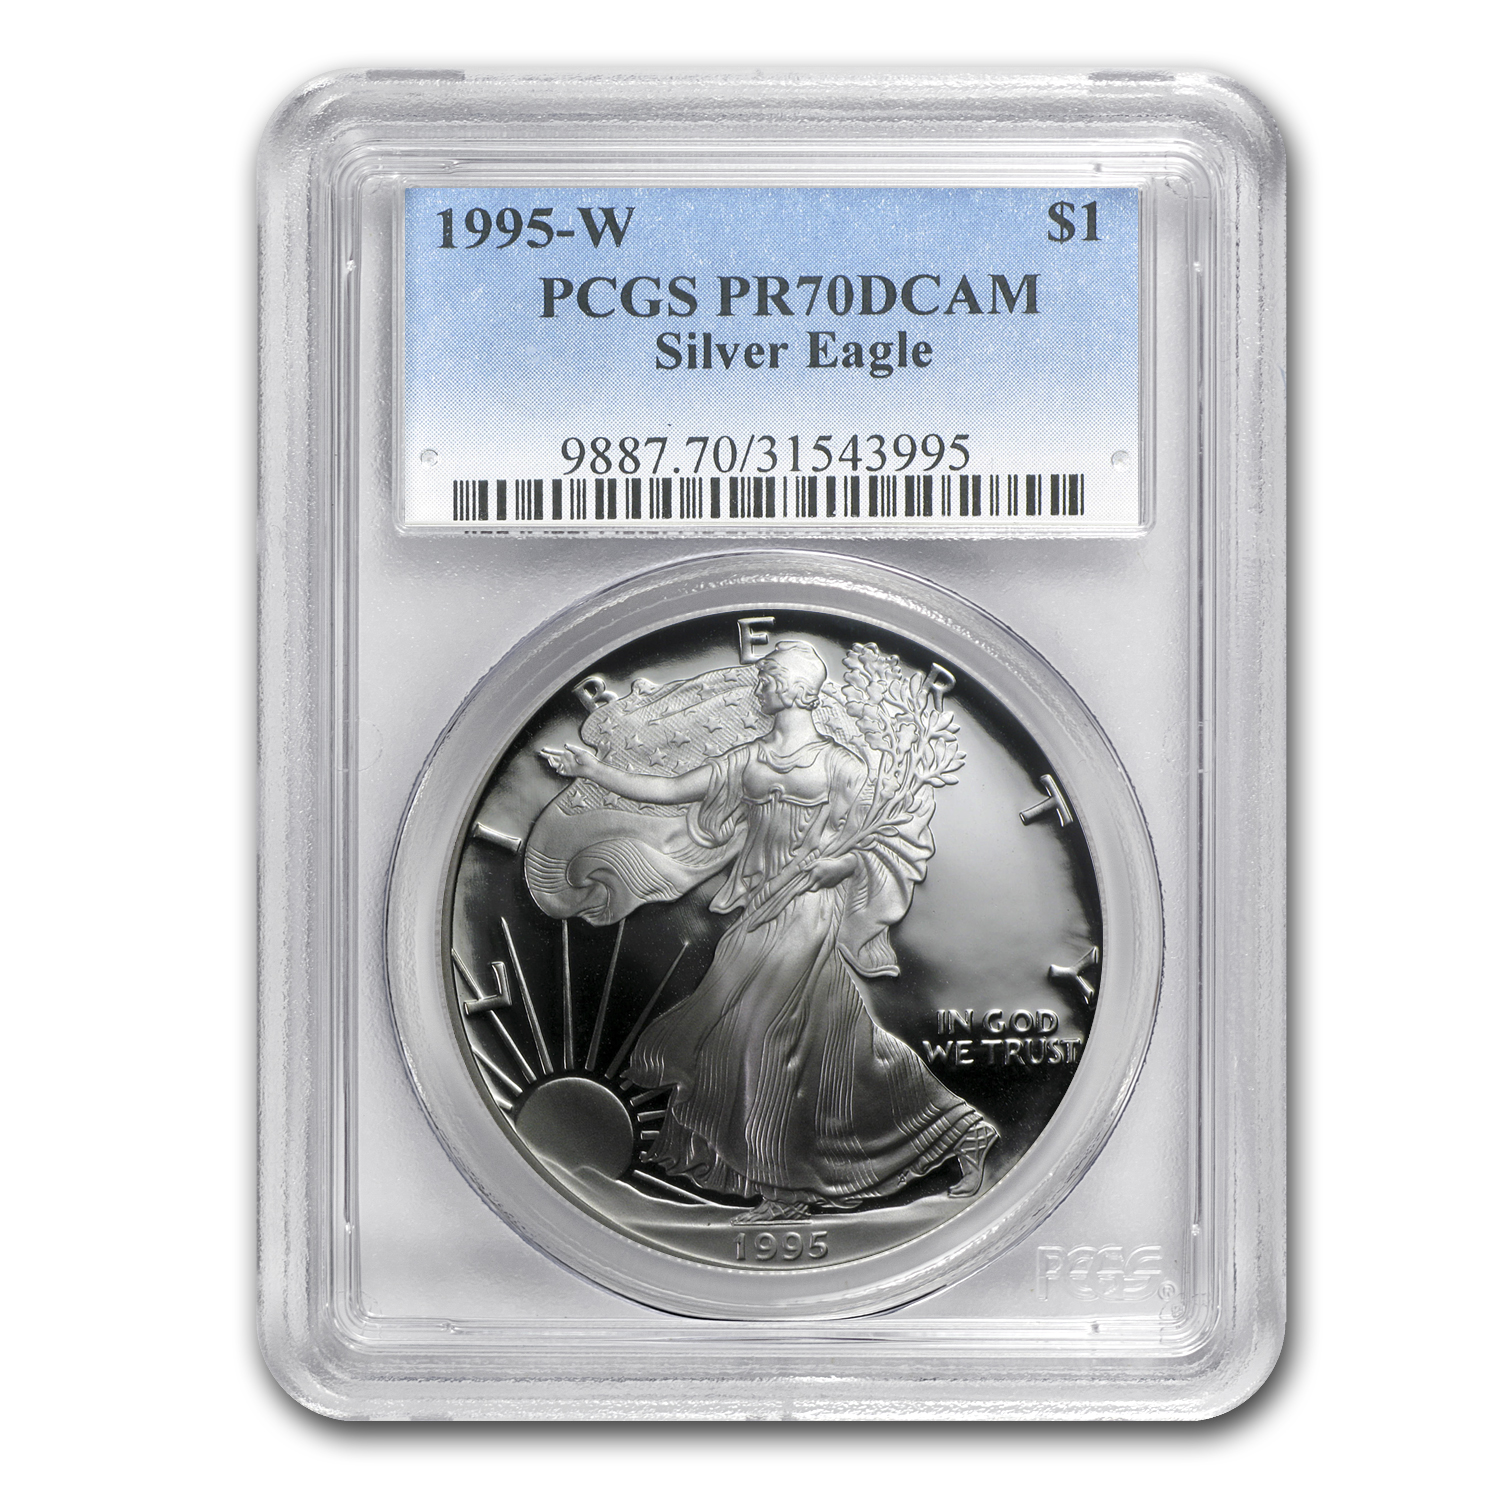 1995-W (Proof) Silver American Eagle PR-70 PCGS Registry Set